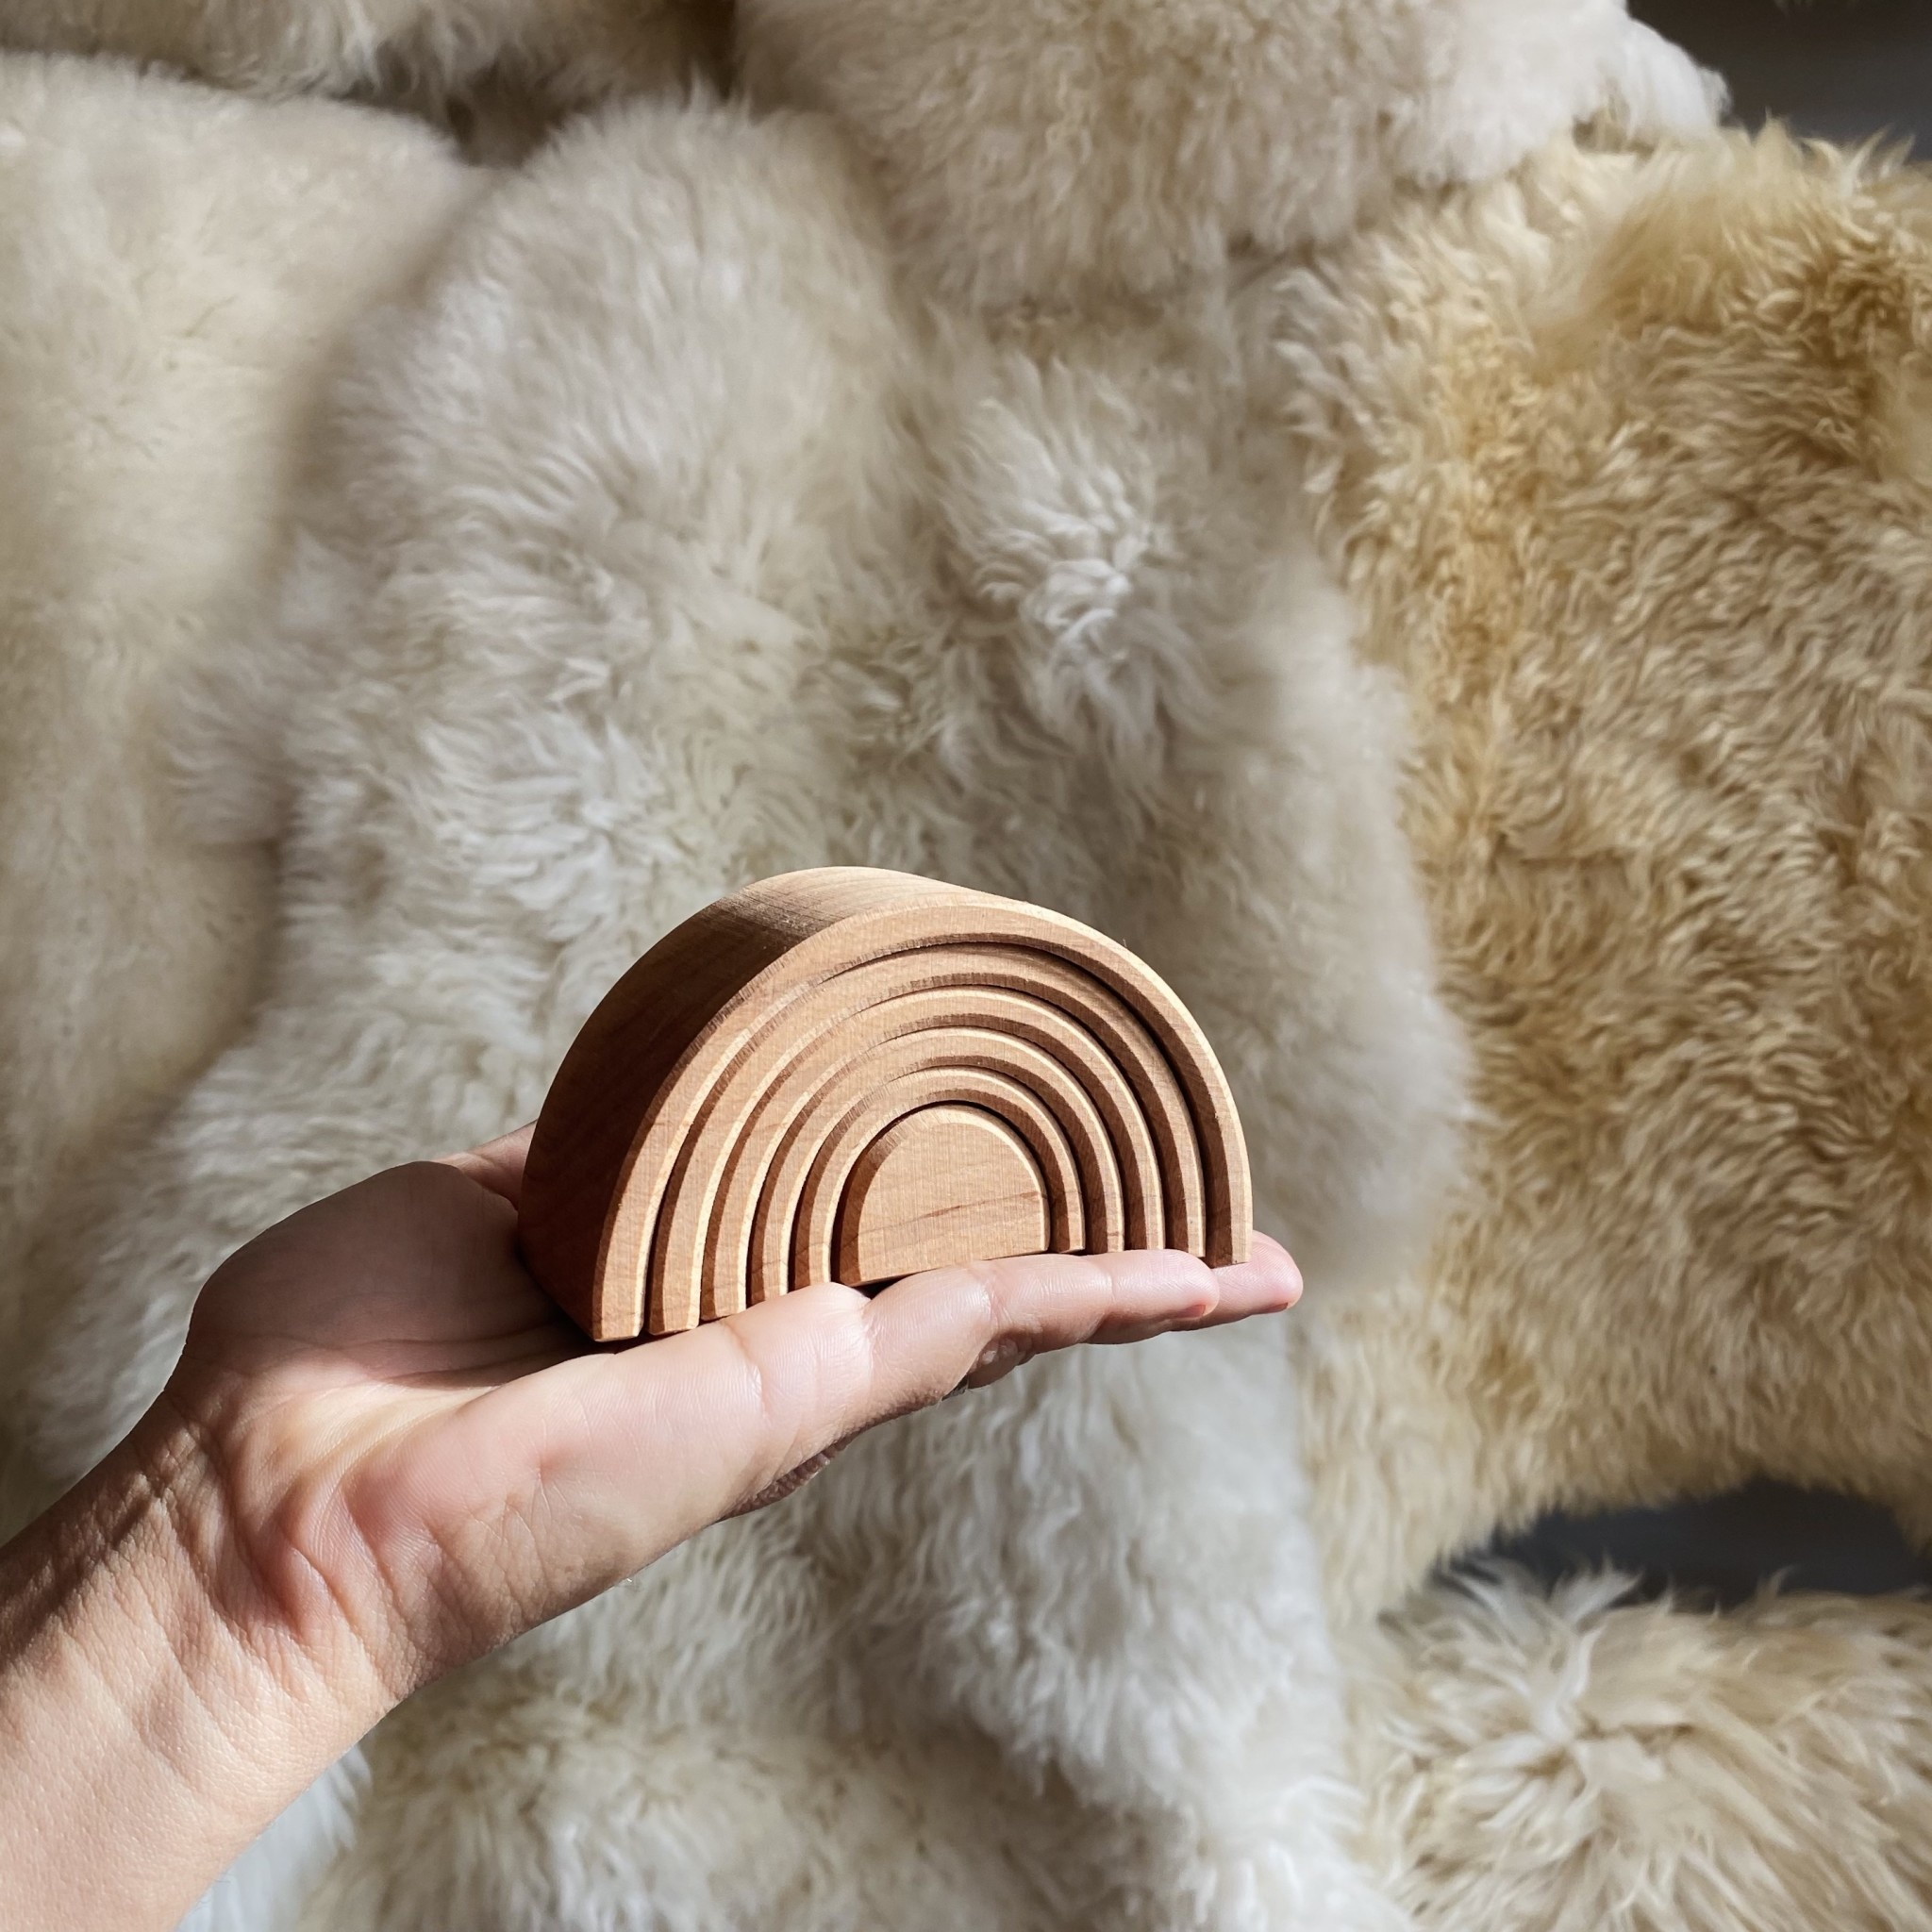 Grimm's Toys Wooden Tunnel - Natural - Small - 4""